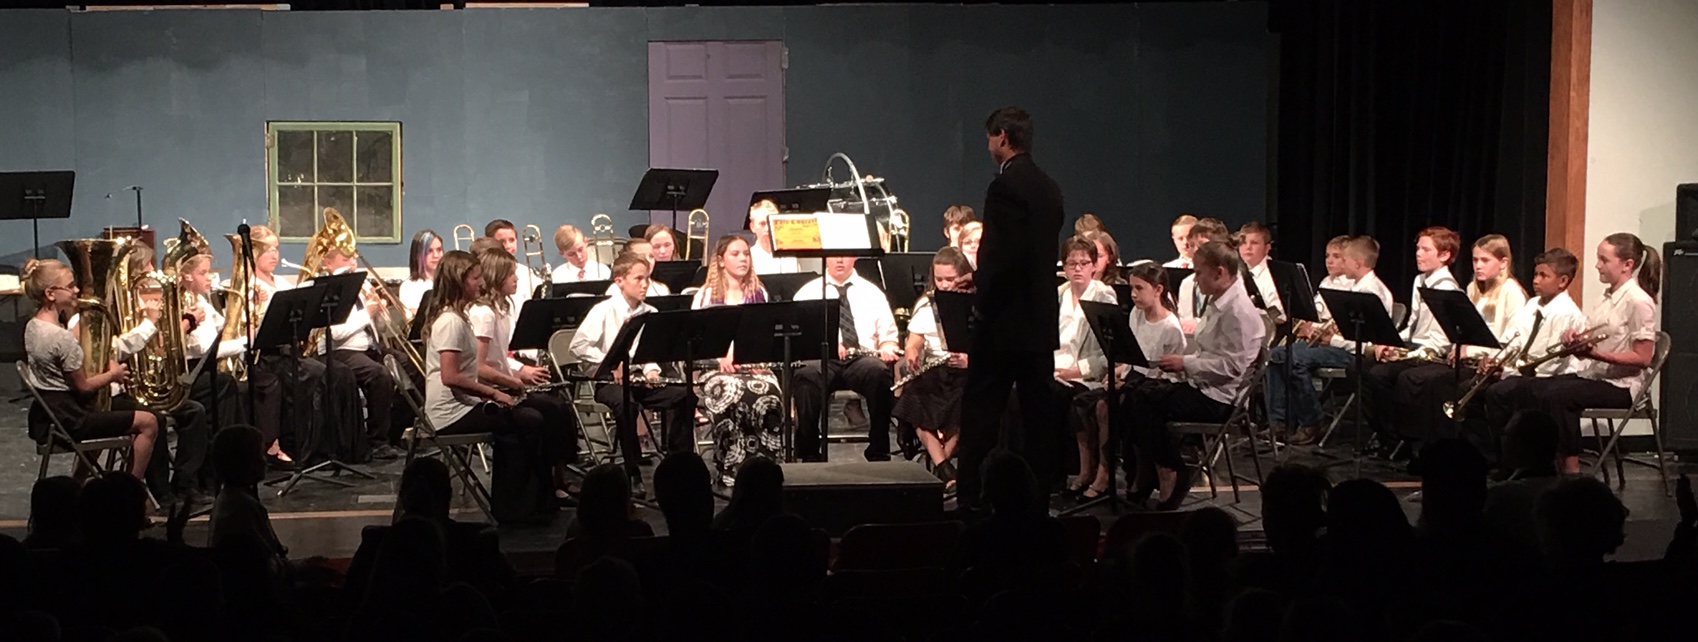 Local Students Perform Annual Fall Concert